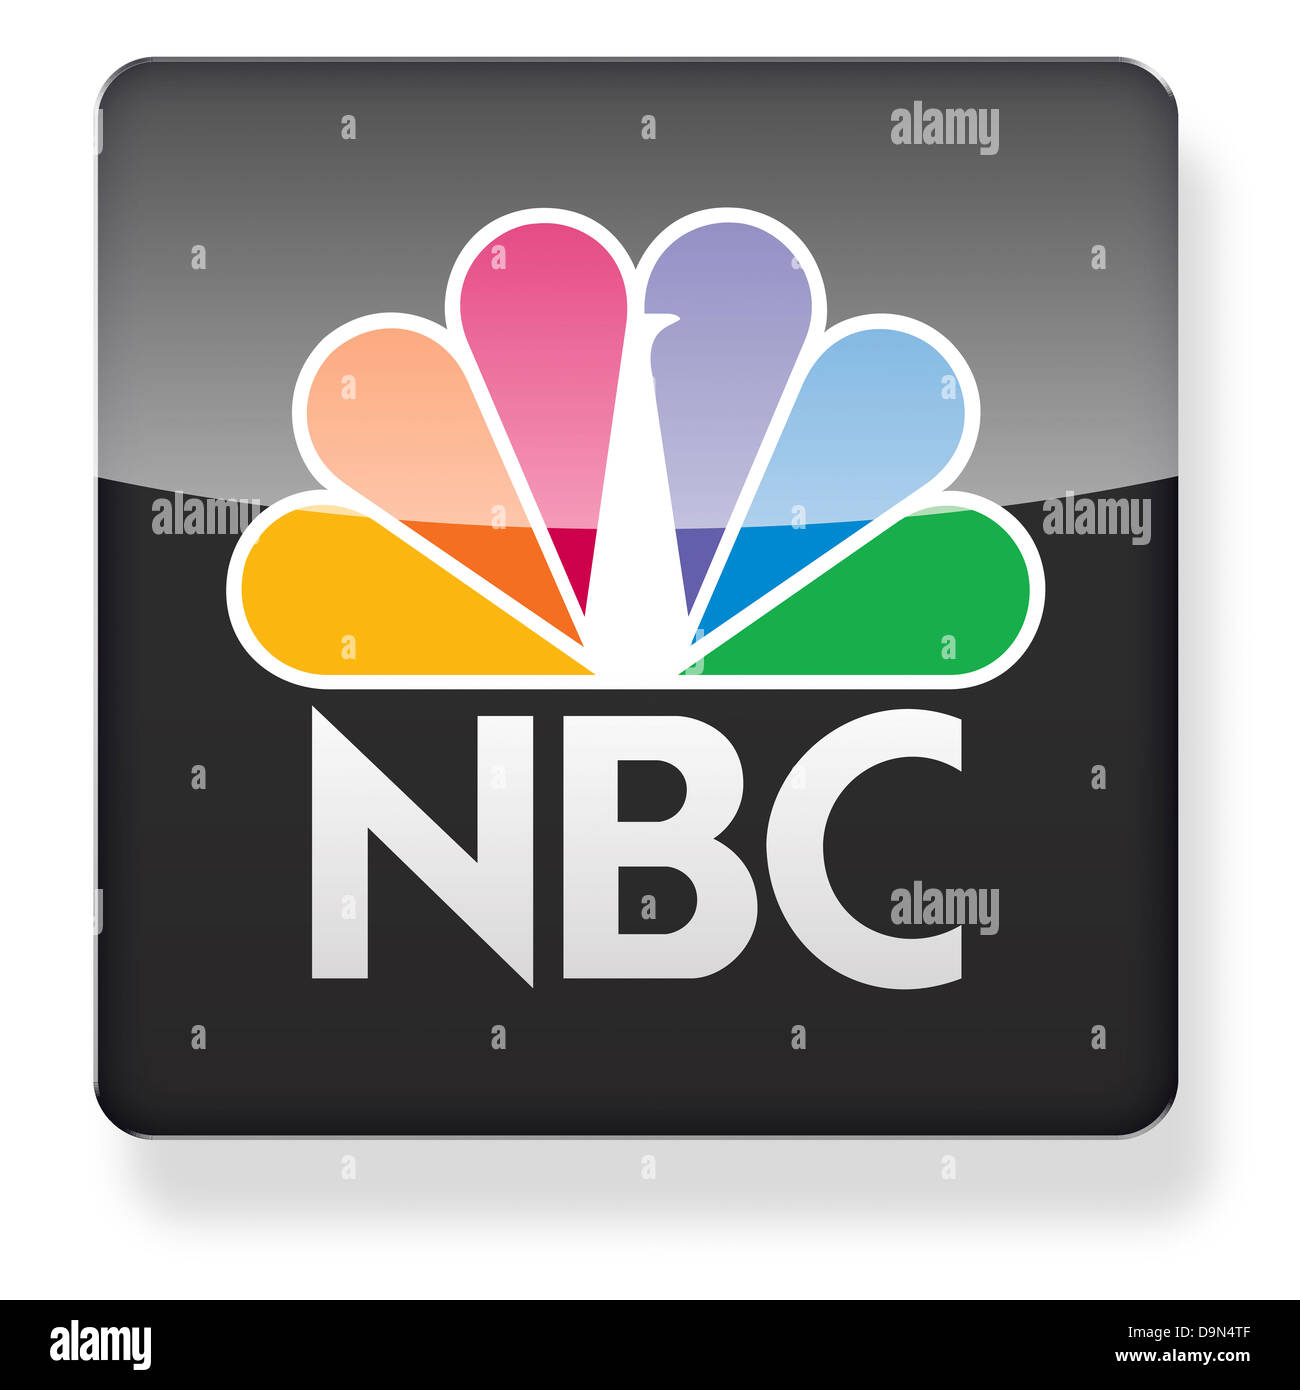 NBC logo as an app icon. Clipping path included. - Stock Image